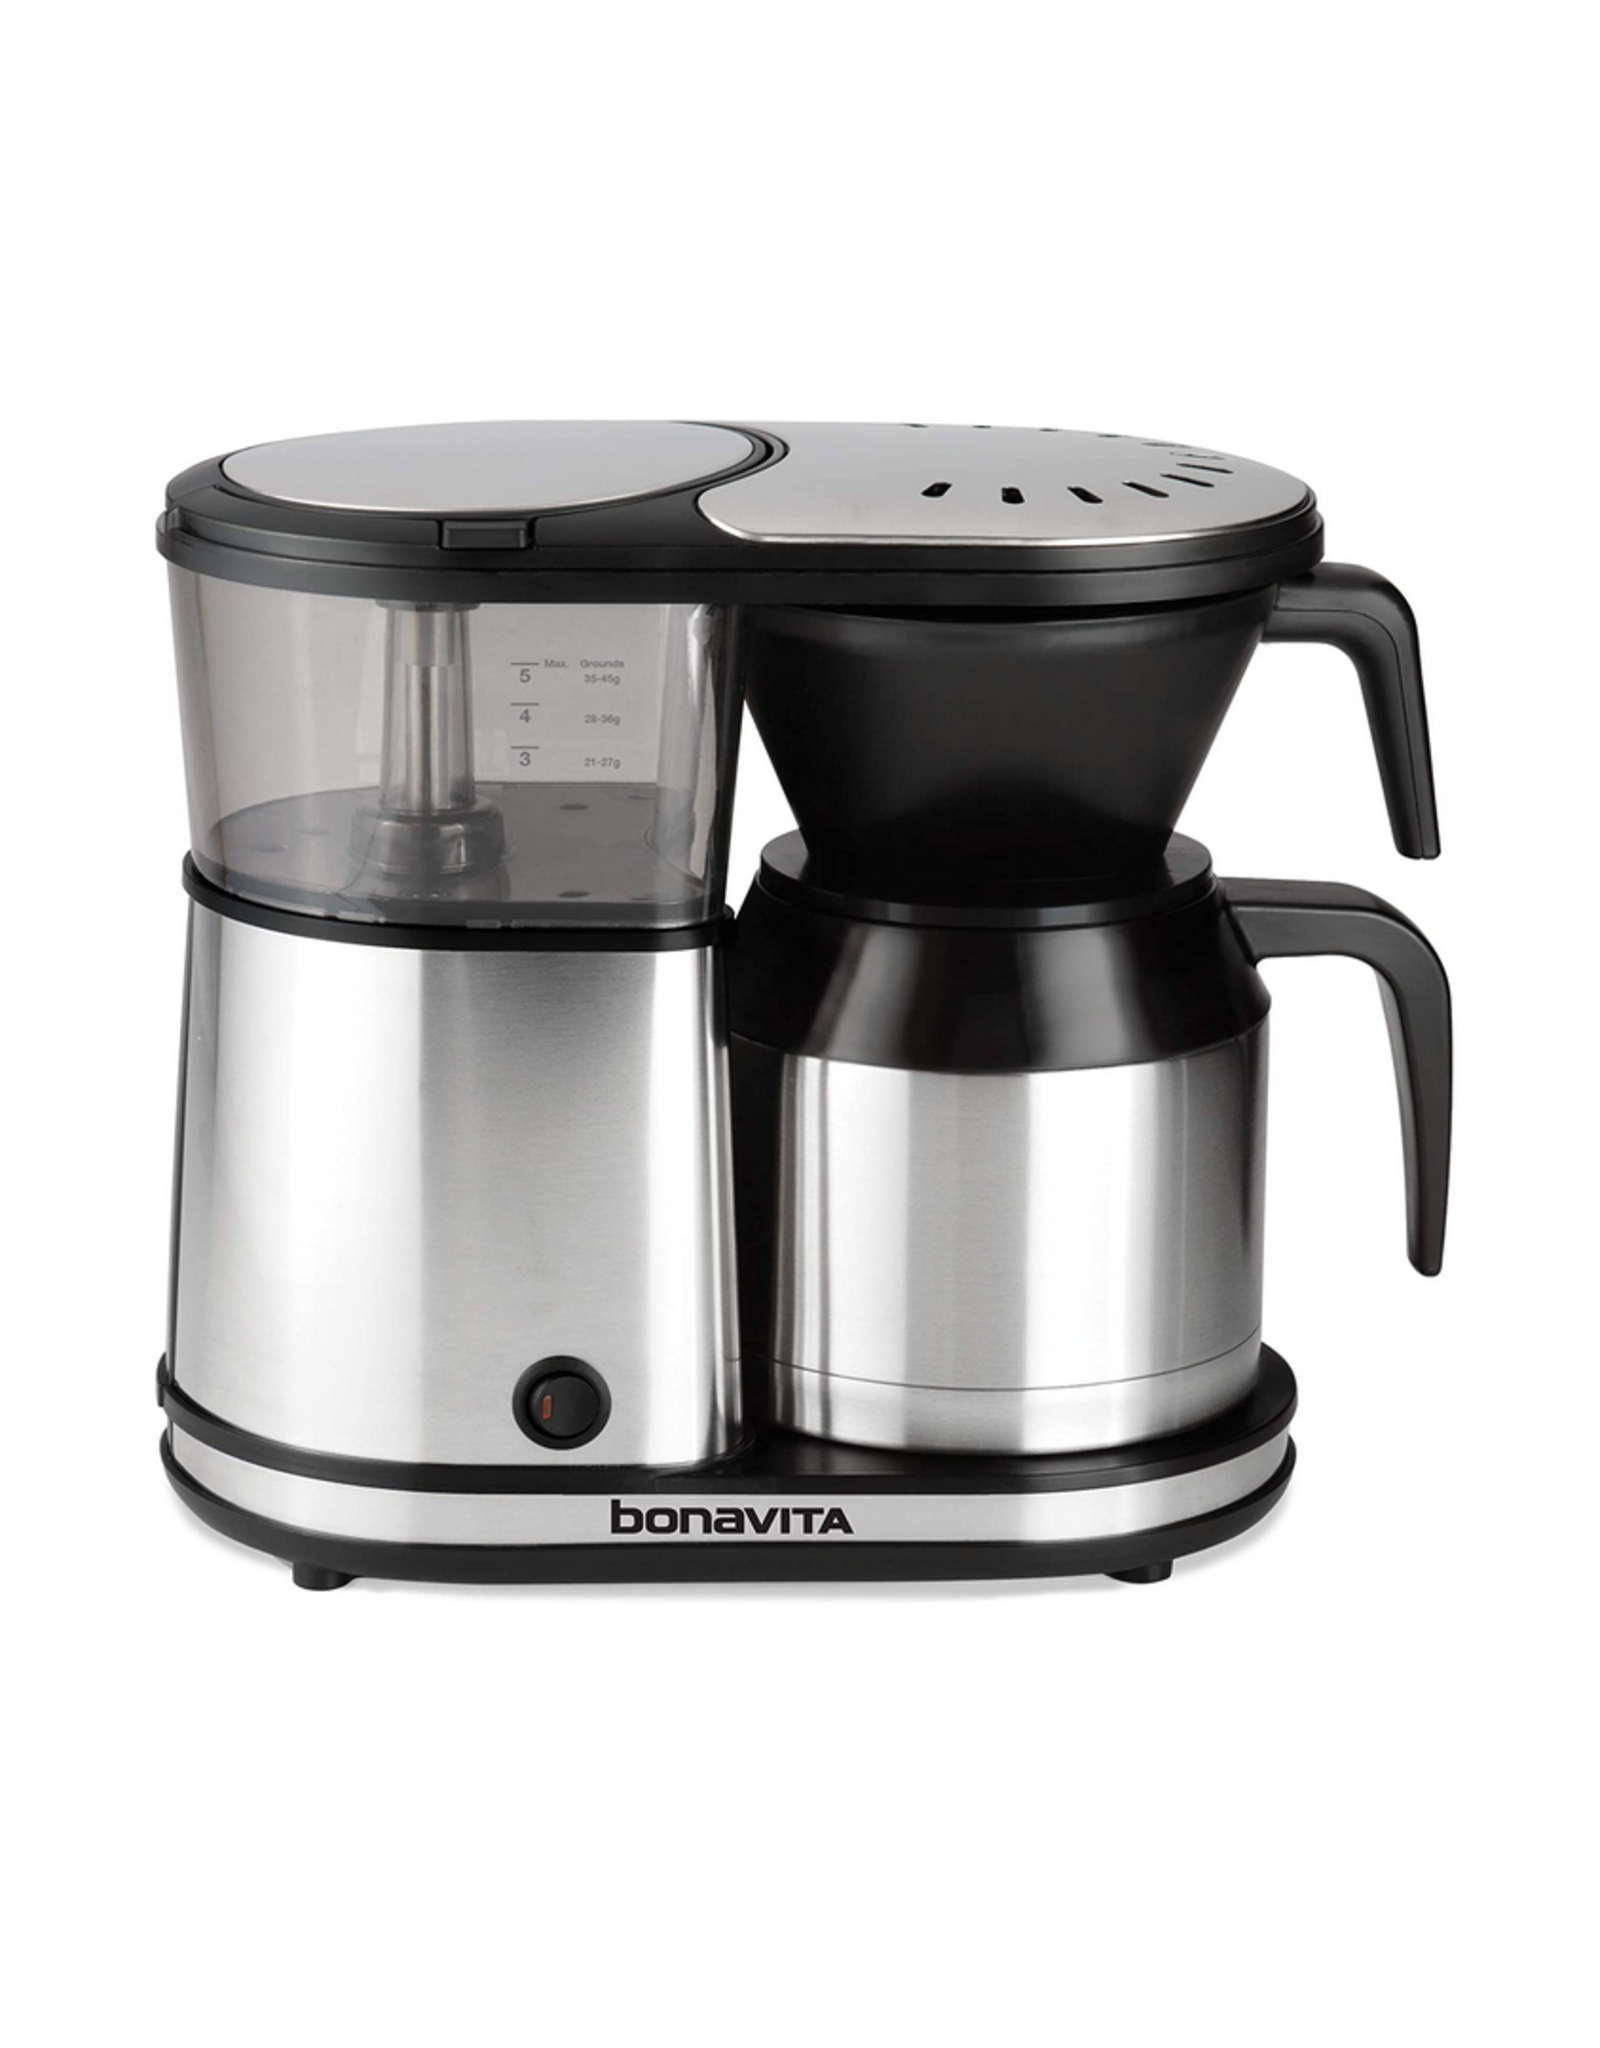 Bonavita Bonavita Thermal Carafe Coffee Brewer 5 Cup